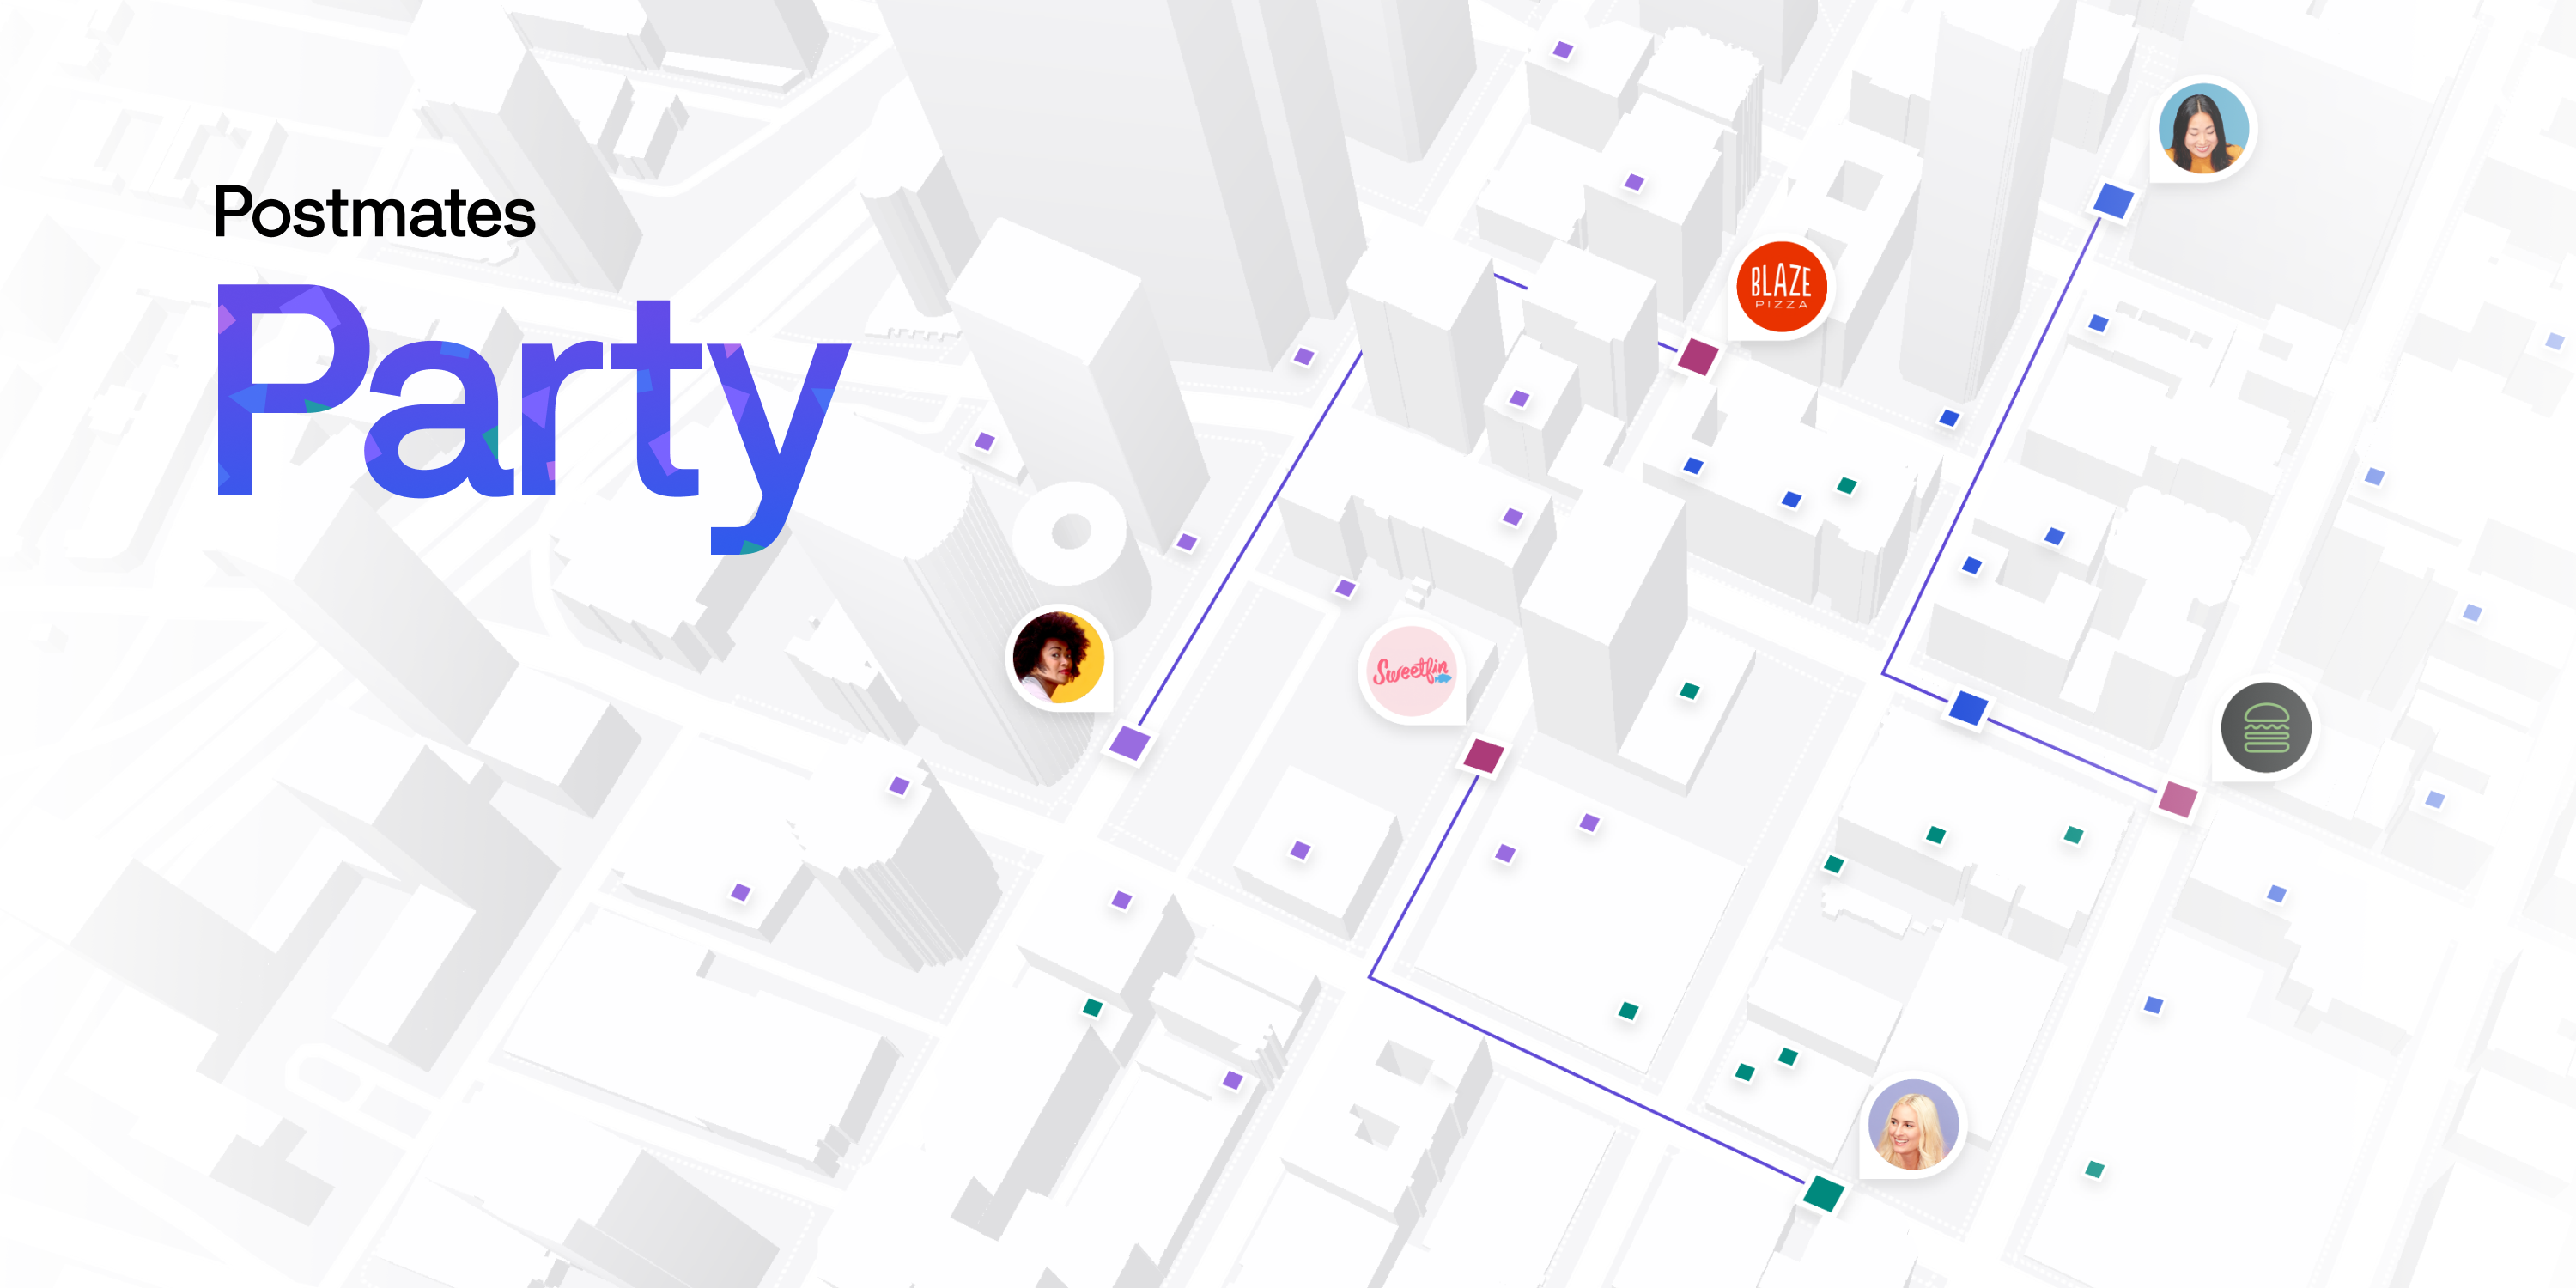 Join the (Postmates) Party - Postmates